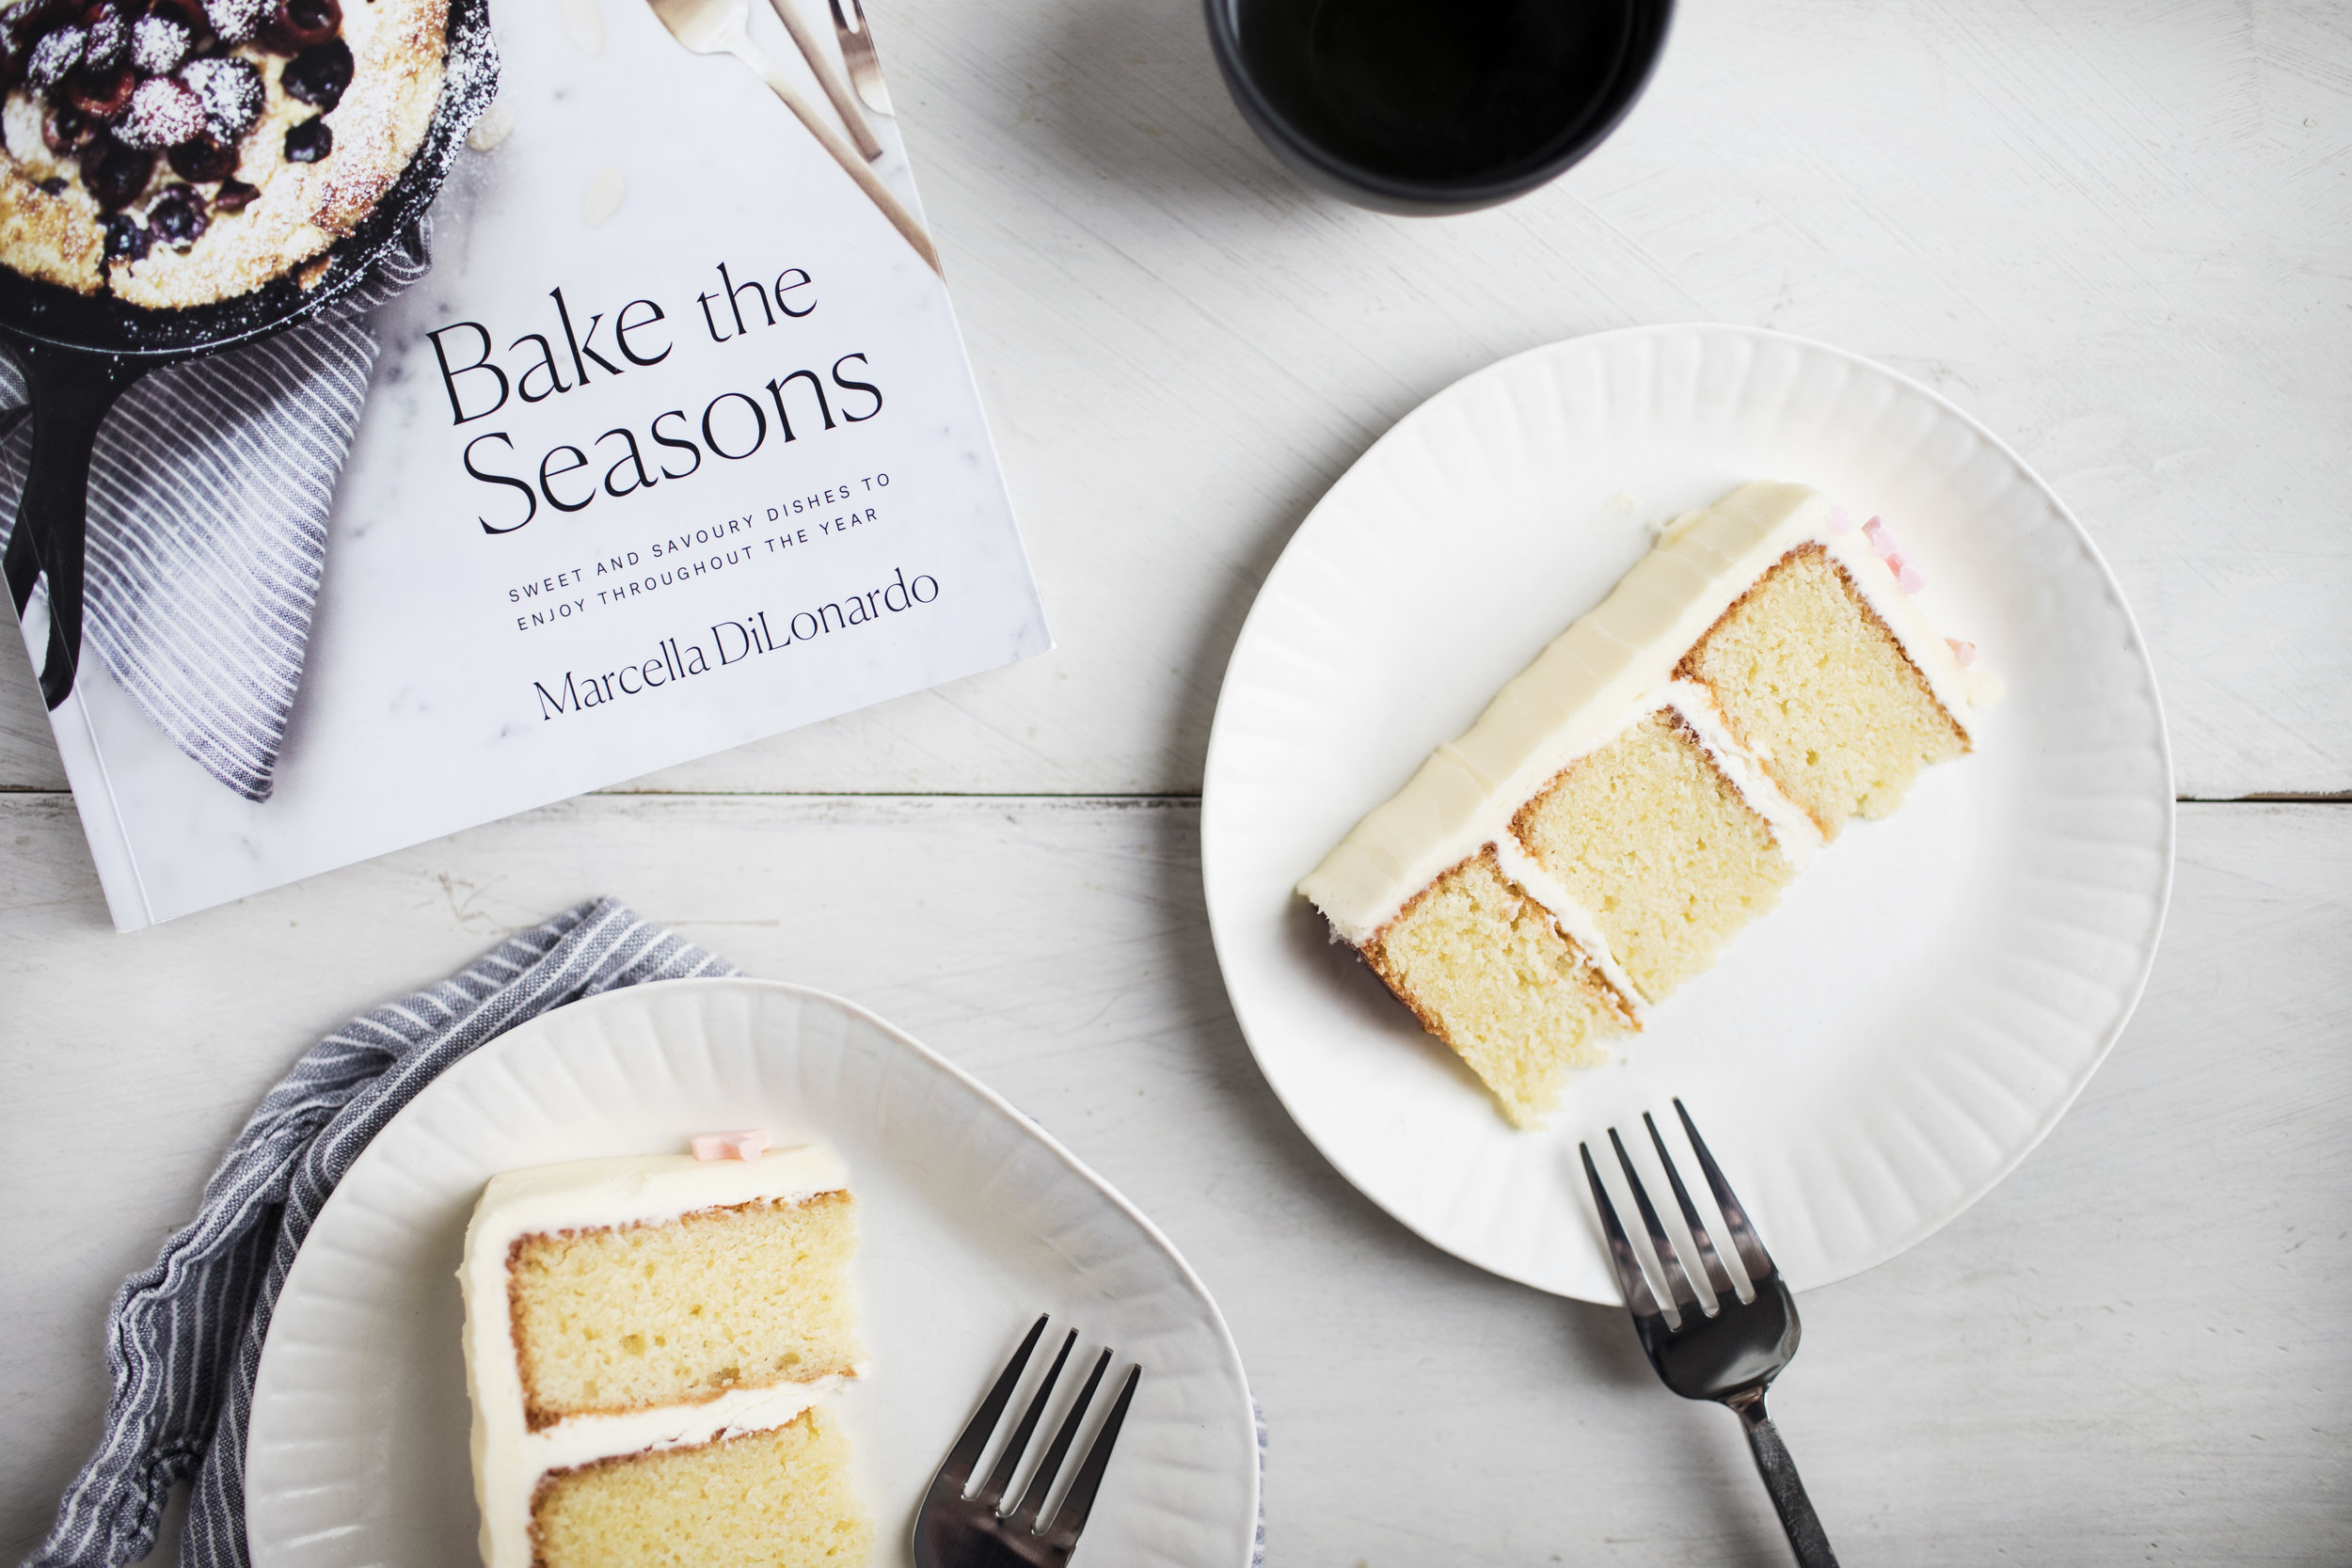 bake the seasons cake viiii.jpg